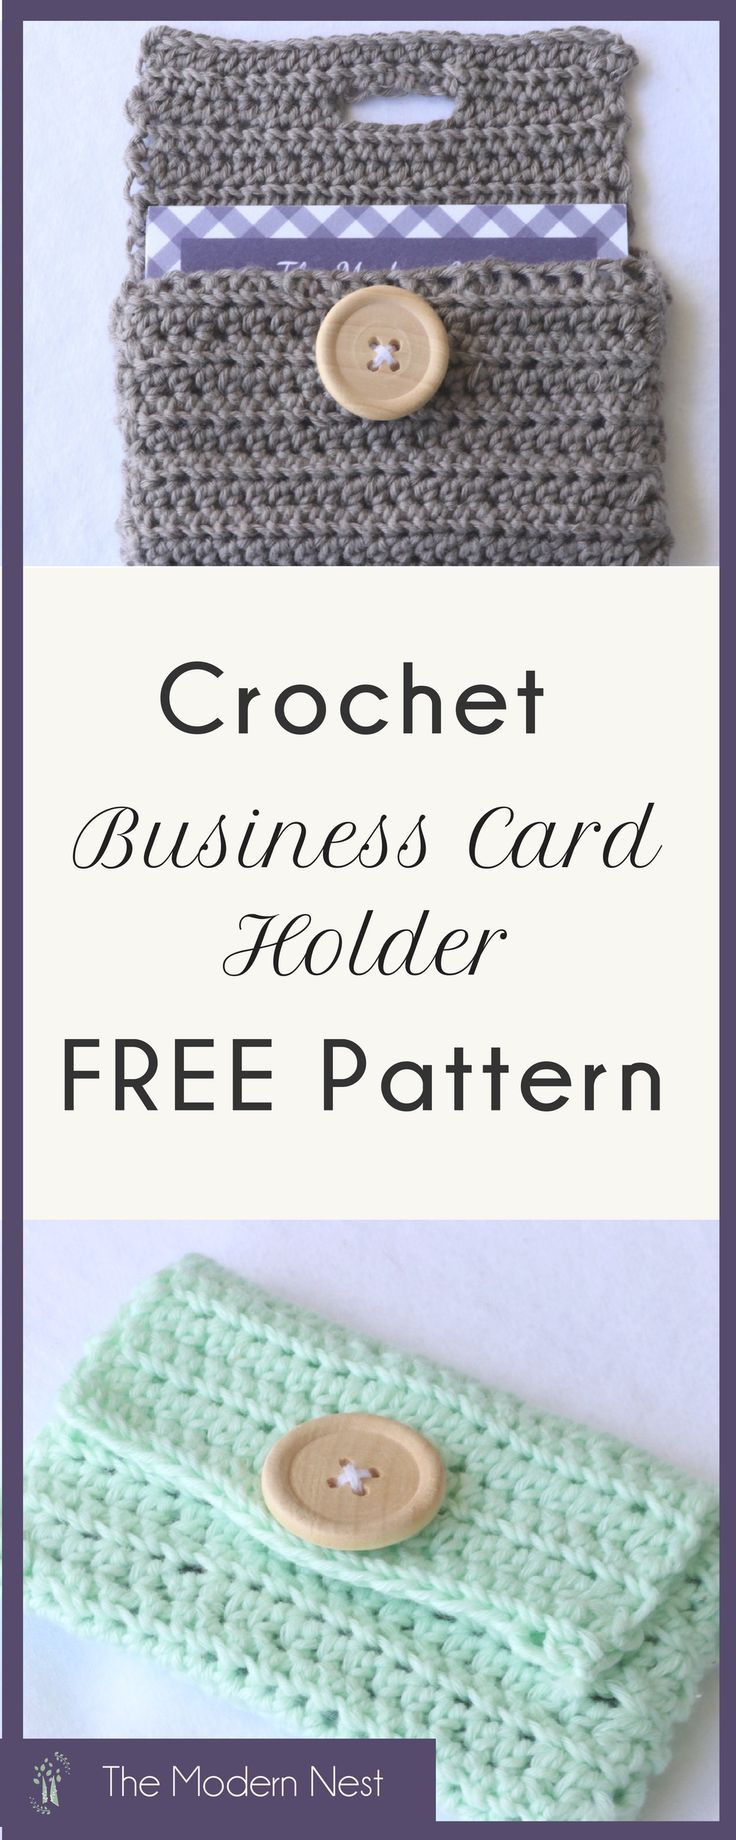 Best 25 free business cards ideas on pinterest free business business card holder crochet pattern magicingreecefo Image collections